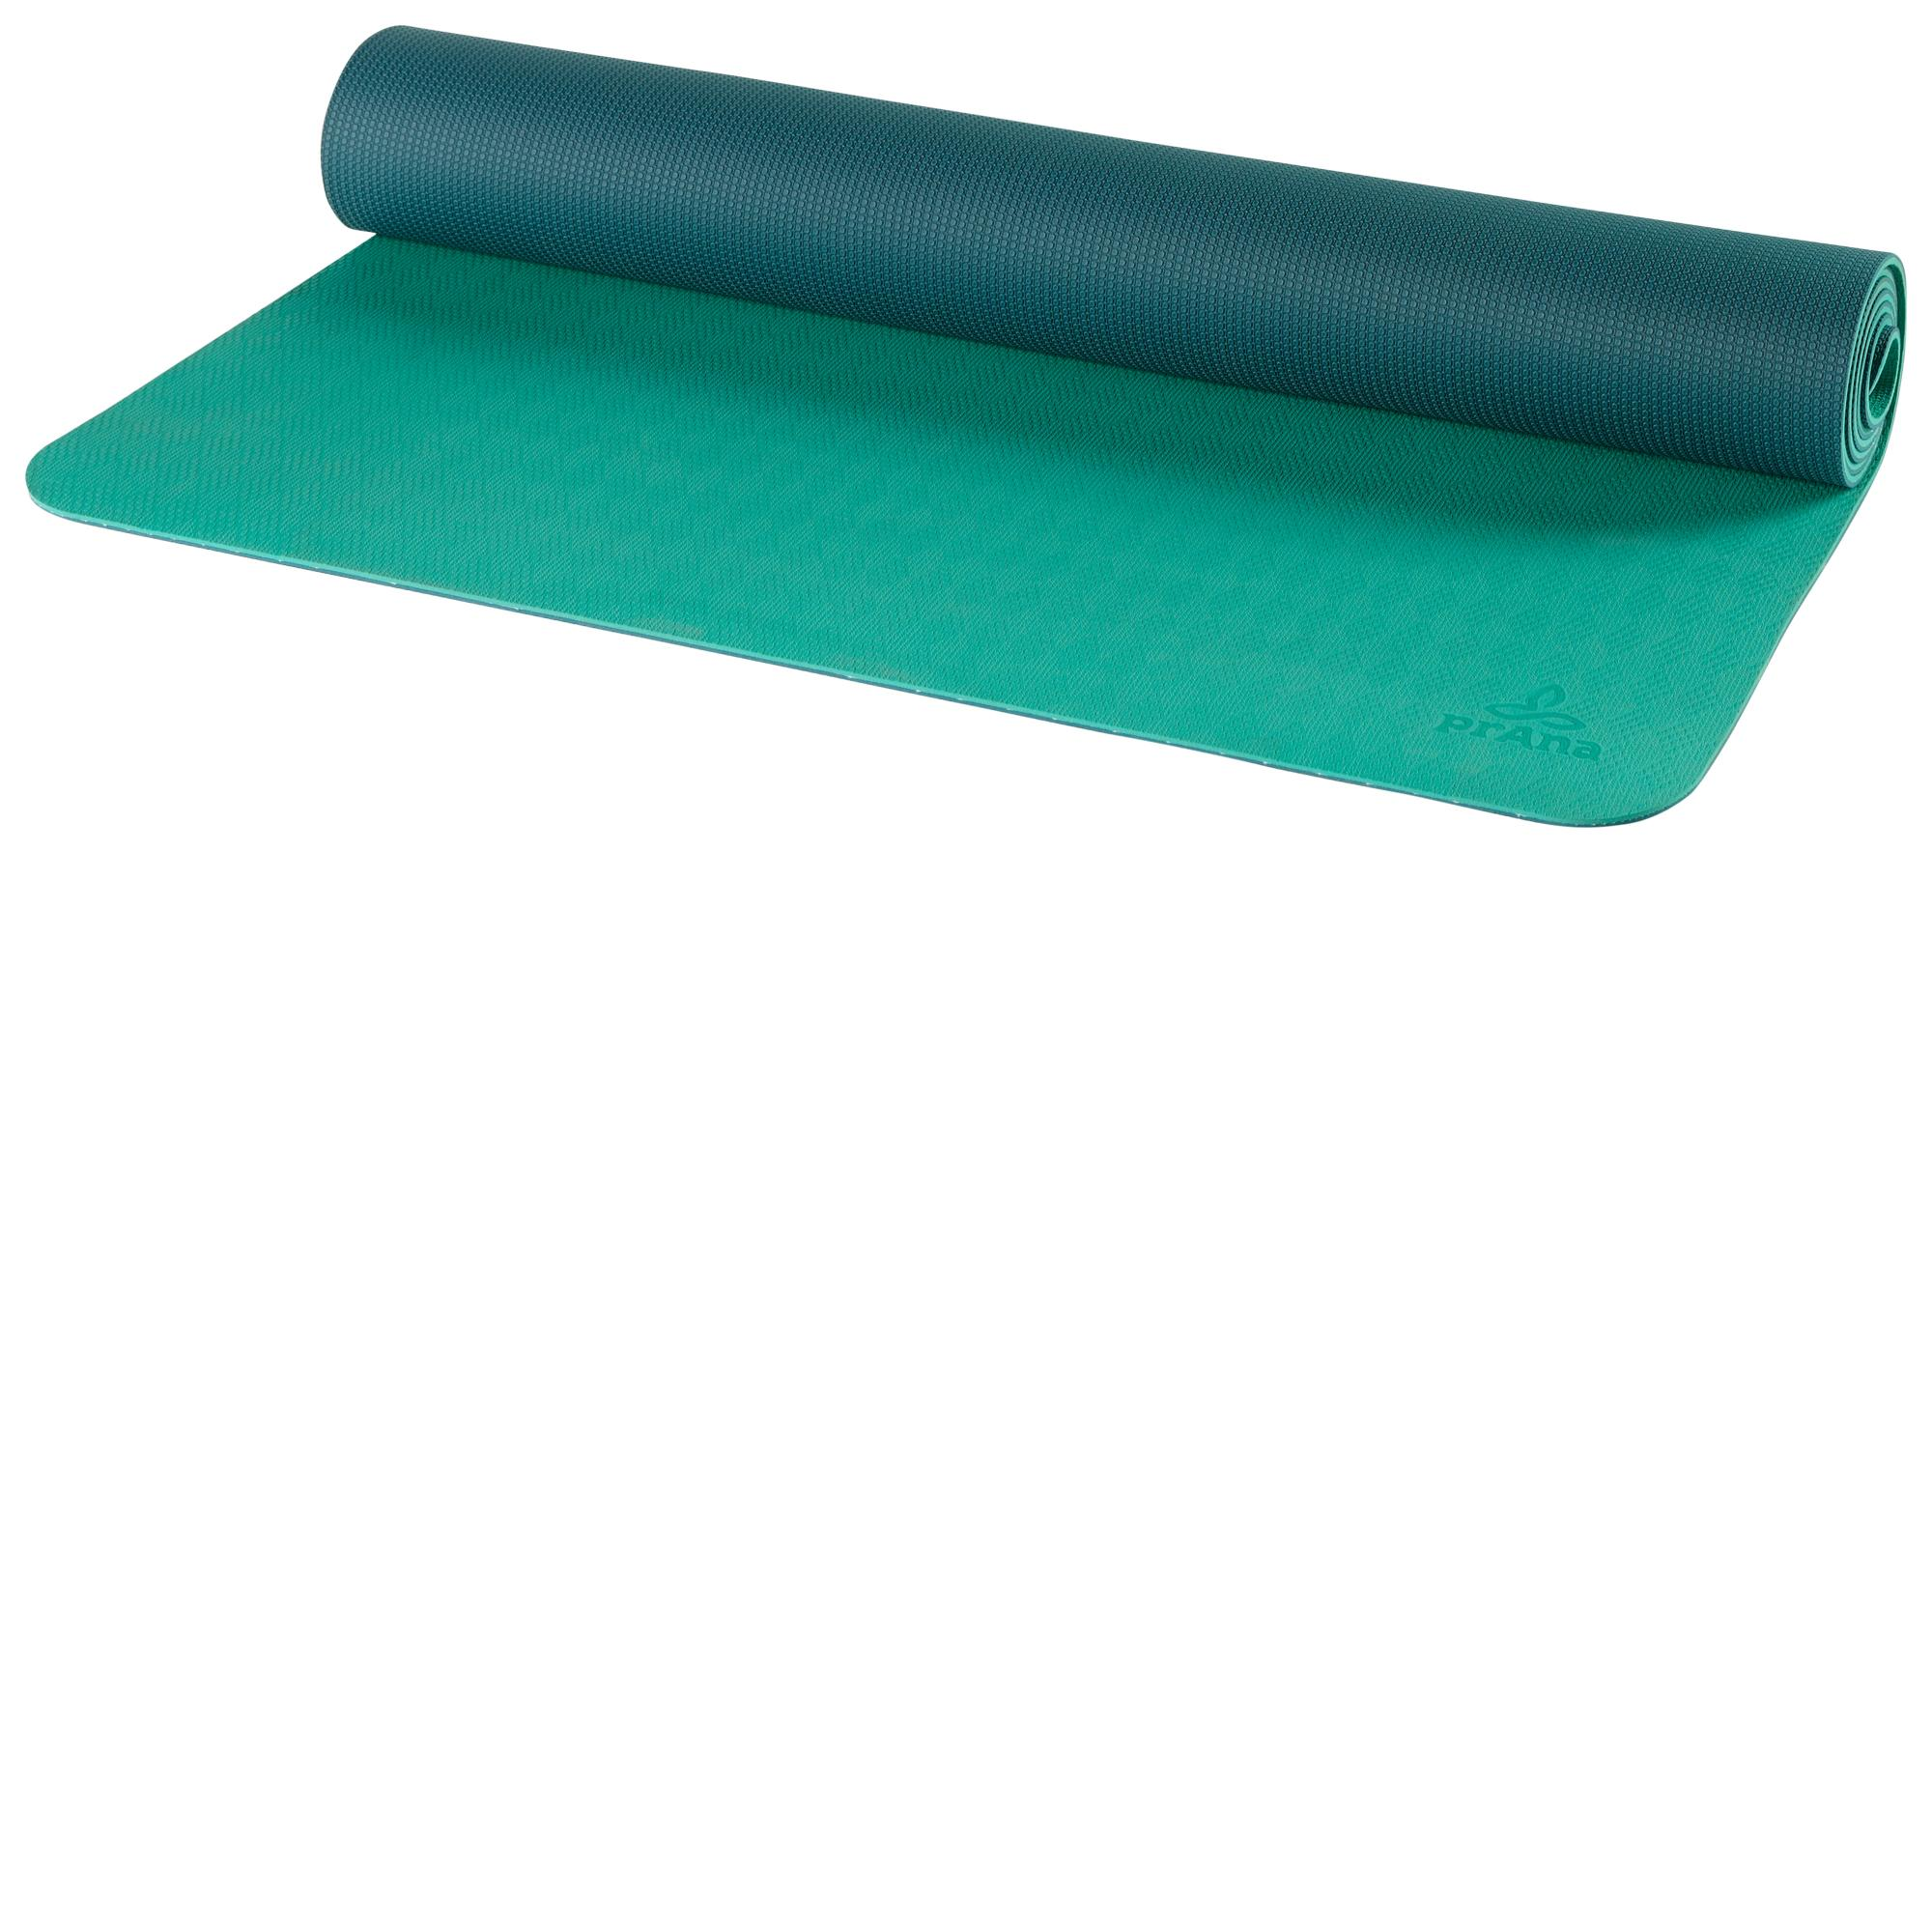 so jade best you actually put yogamat yoga the cork sweaty hands down mats for mat a dog in harmony stay your p can